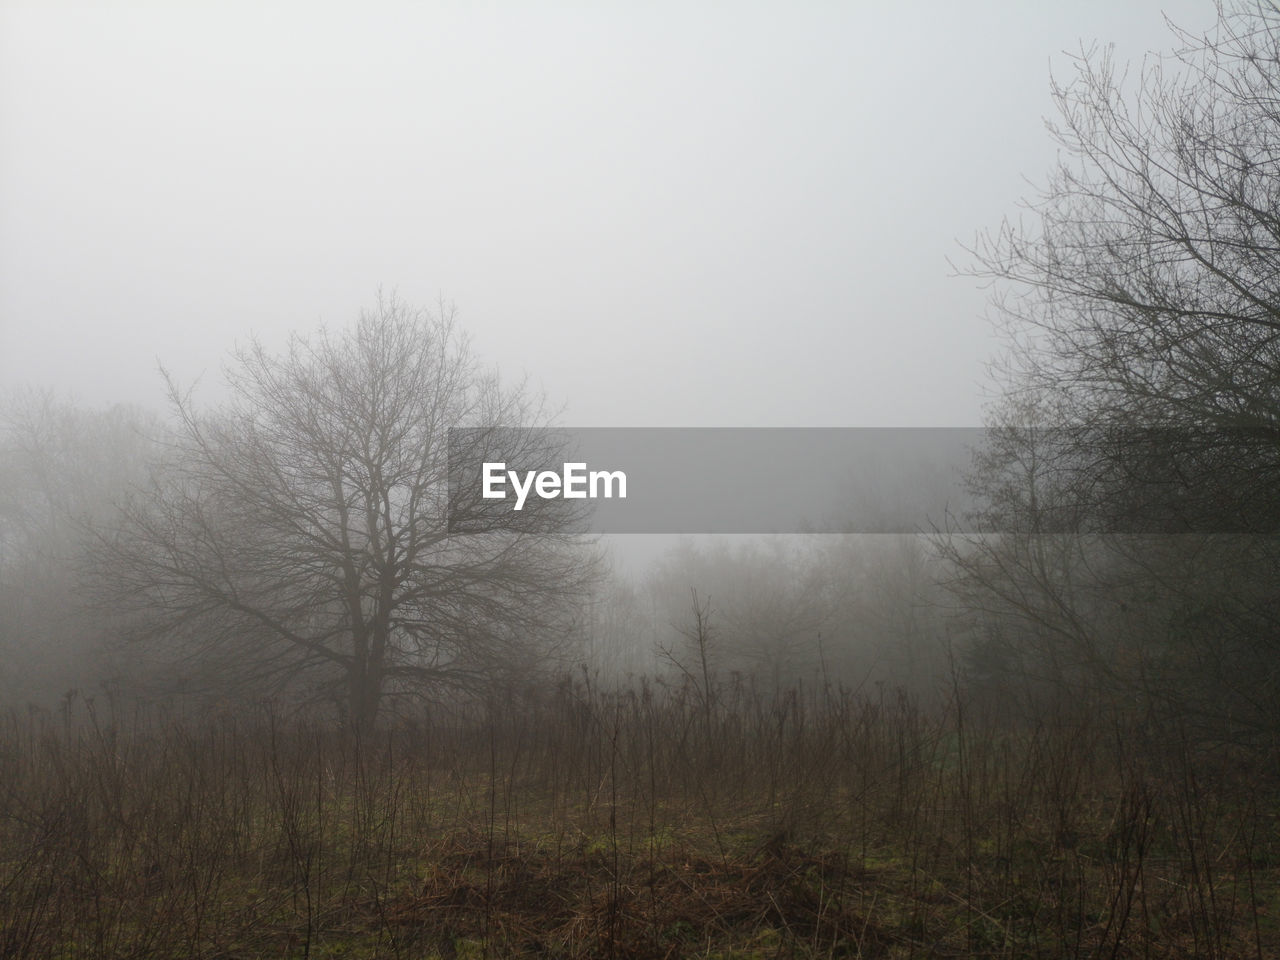 fog, plant, tree, land, tranquility, beauty in nature, sky, tranquil scene, nature, bare tree, environment, landscape, no people, hazy, non-urban scene, field, scenics - nature, forest, day, outdoors